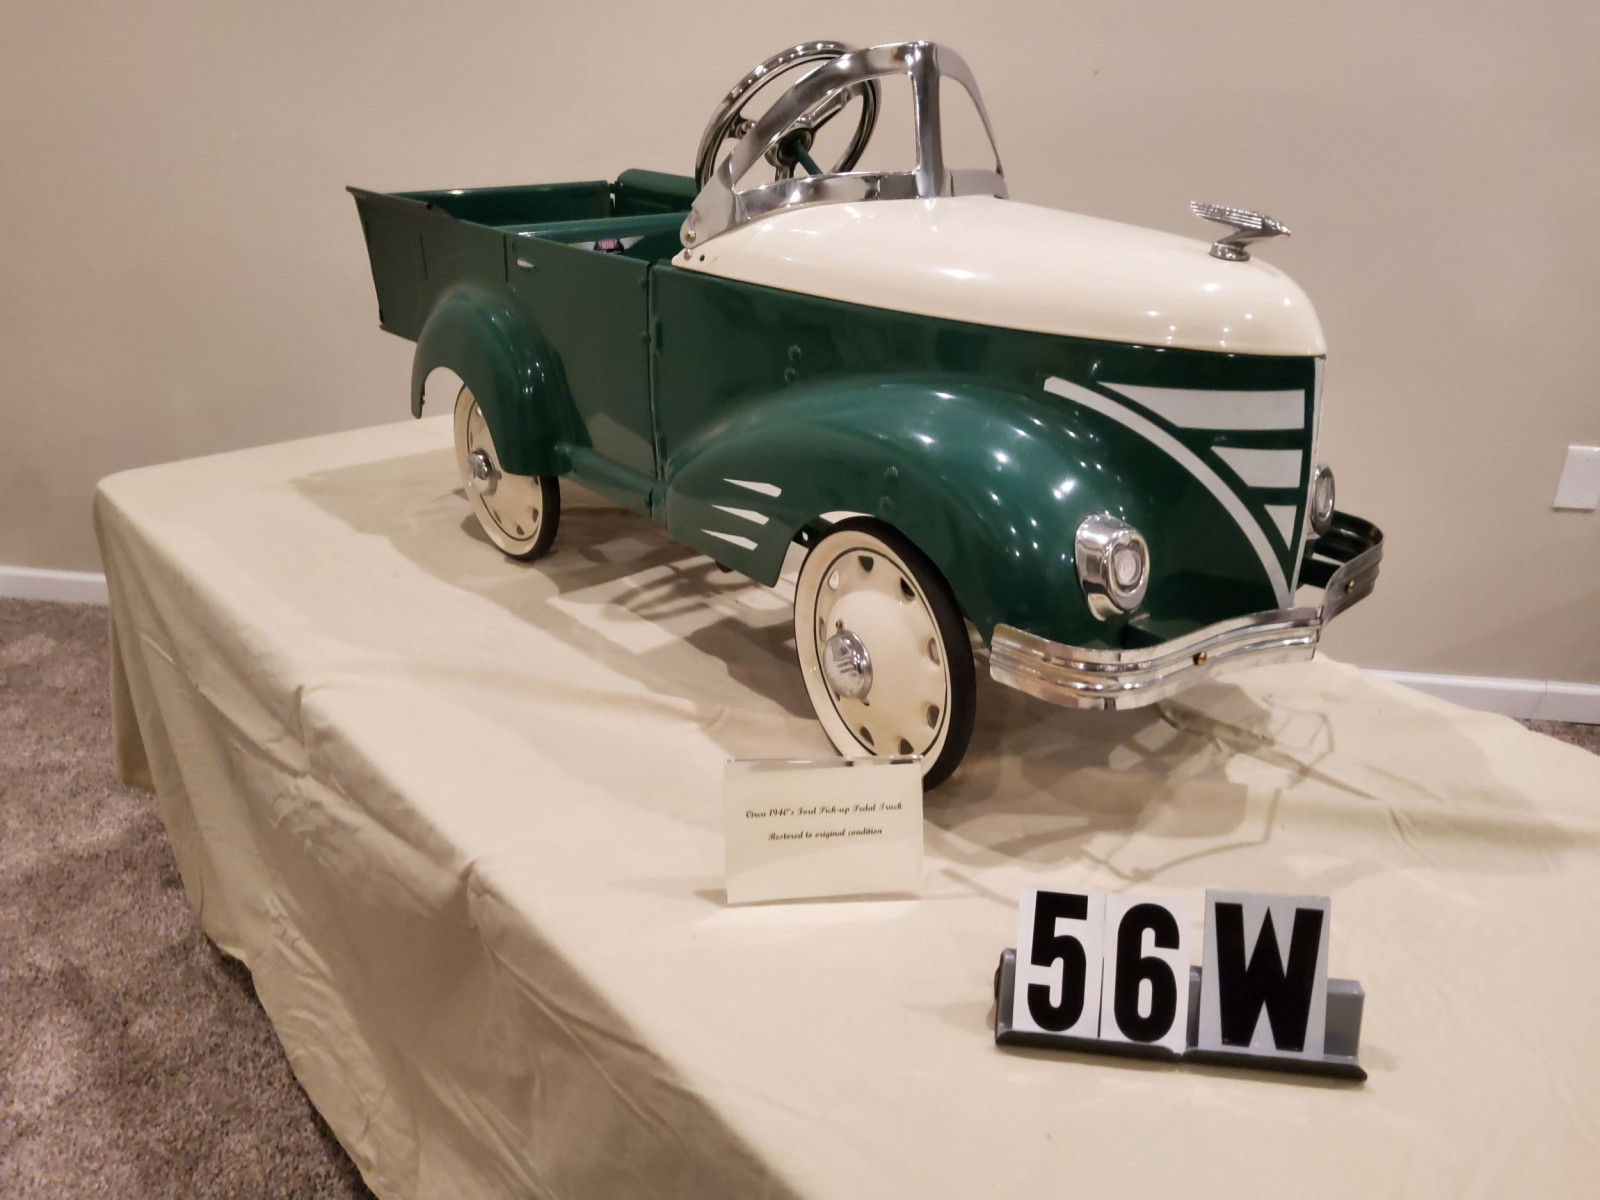 1940's Gendron Ford Pickup Pedal Car - Image 2